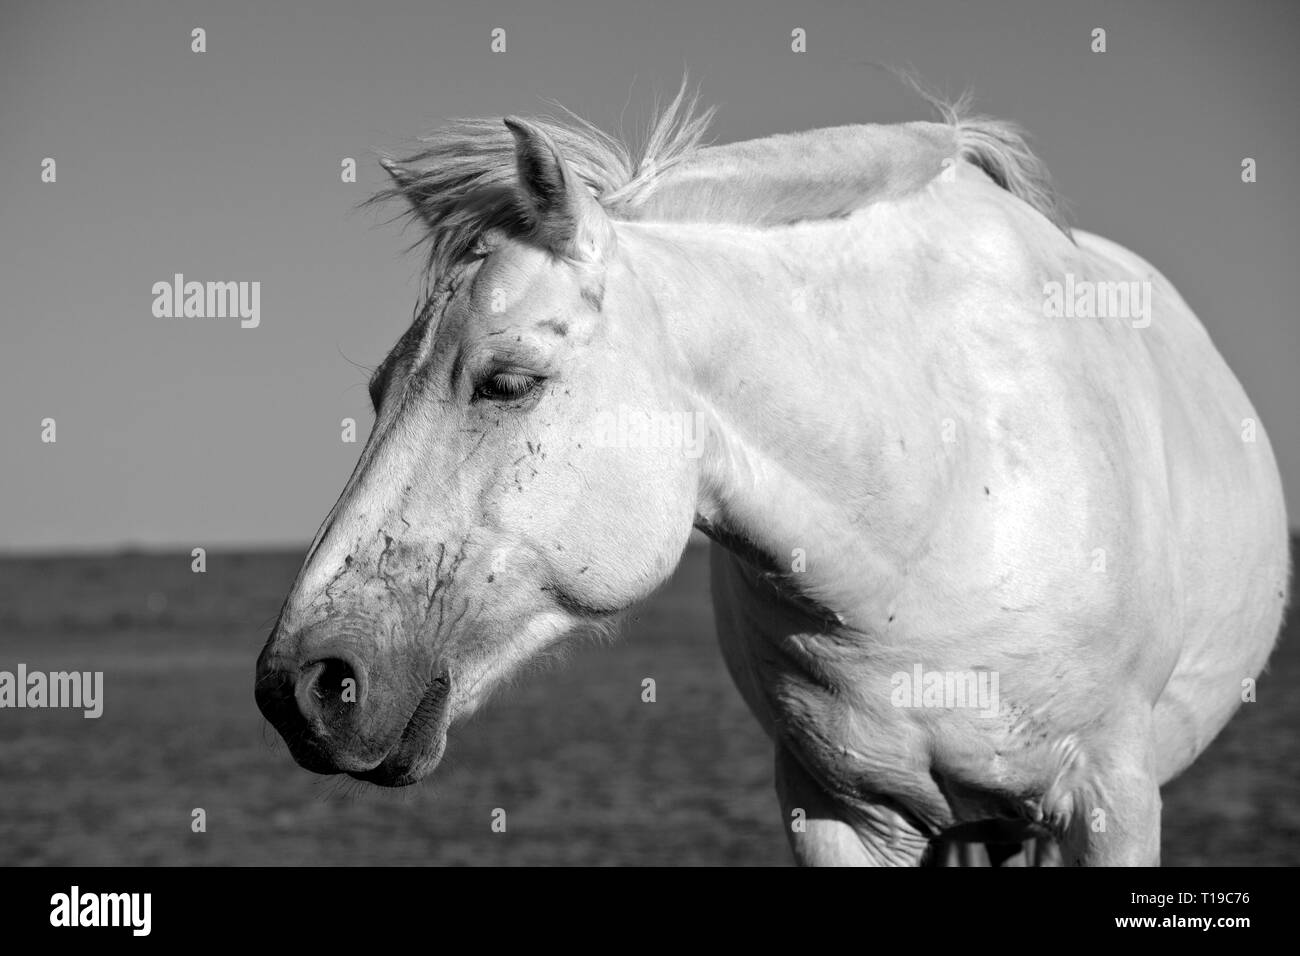 A white horse  at the Gegentala grasslands north of Hohhot in Inner Mongolia, China. - Stock Image